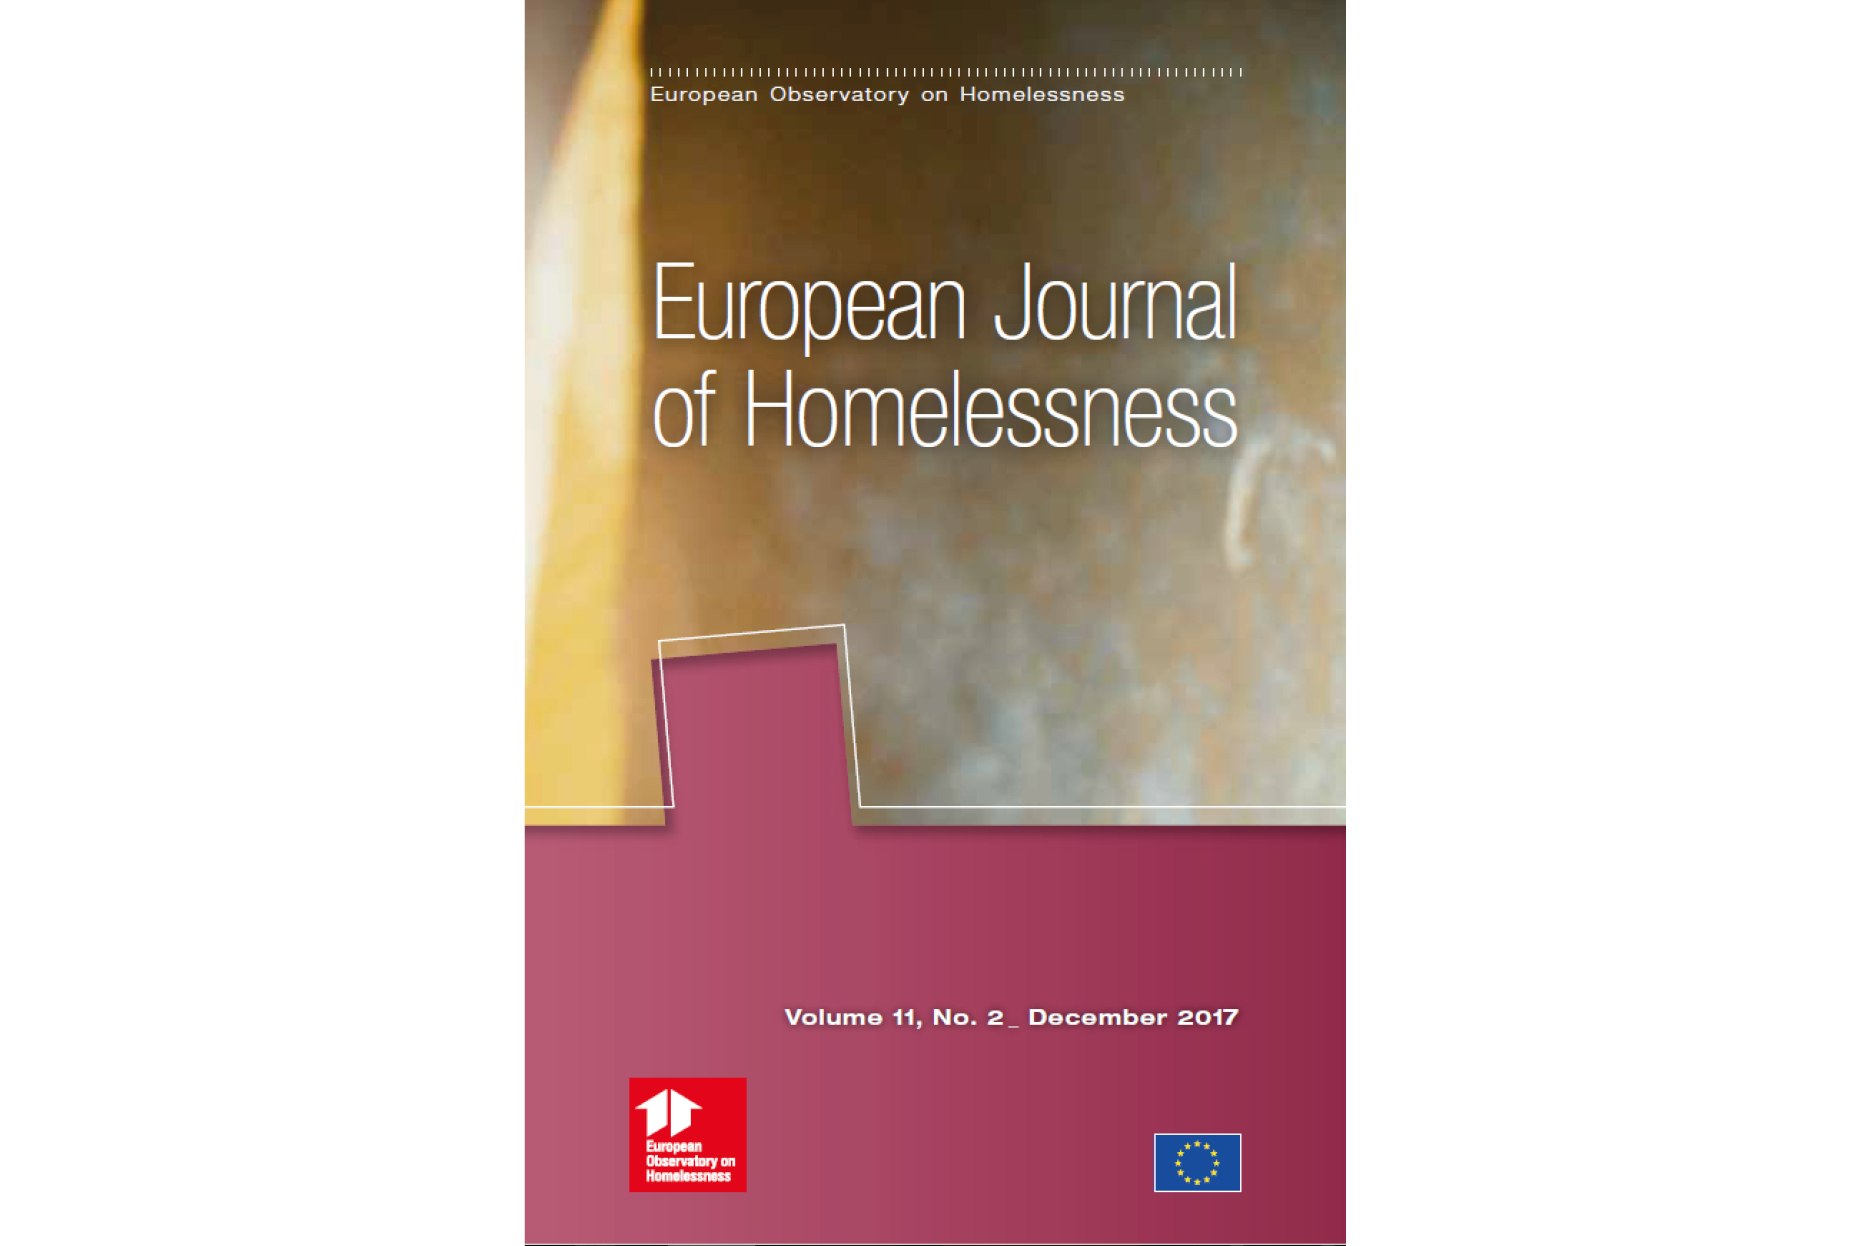 News: European Observatory on Homelessness Releases Latest Editions of Journal and Comparative Studies